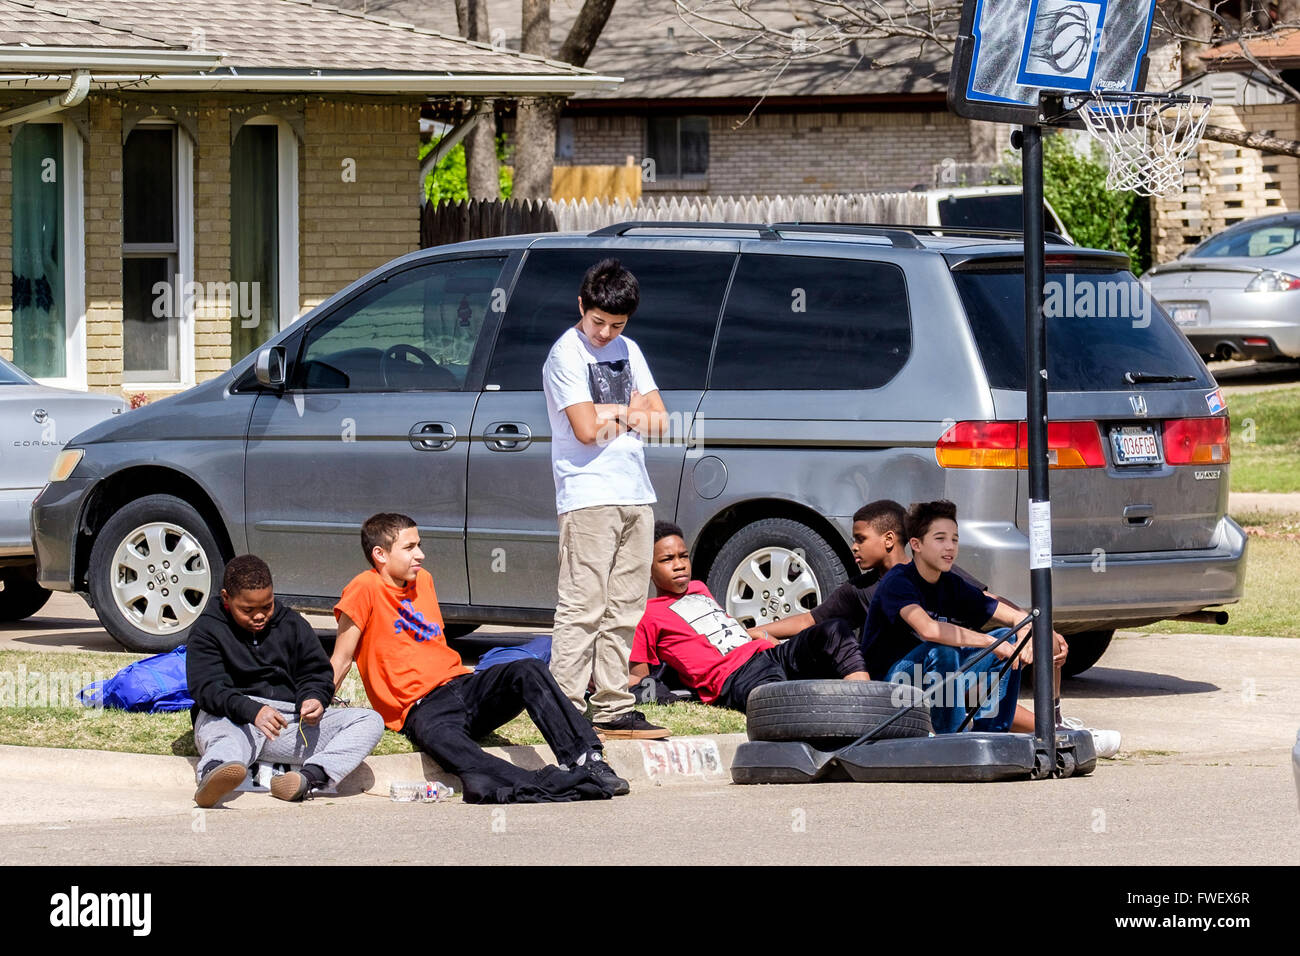 Six preteen boys take a break from playing basketball and sit on a neighborhood curb together in Oklahoma City, - Stock Image